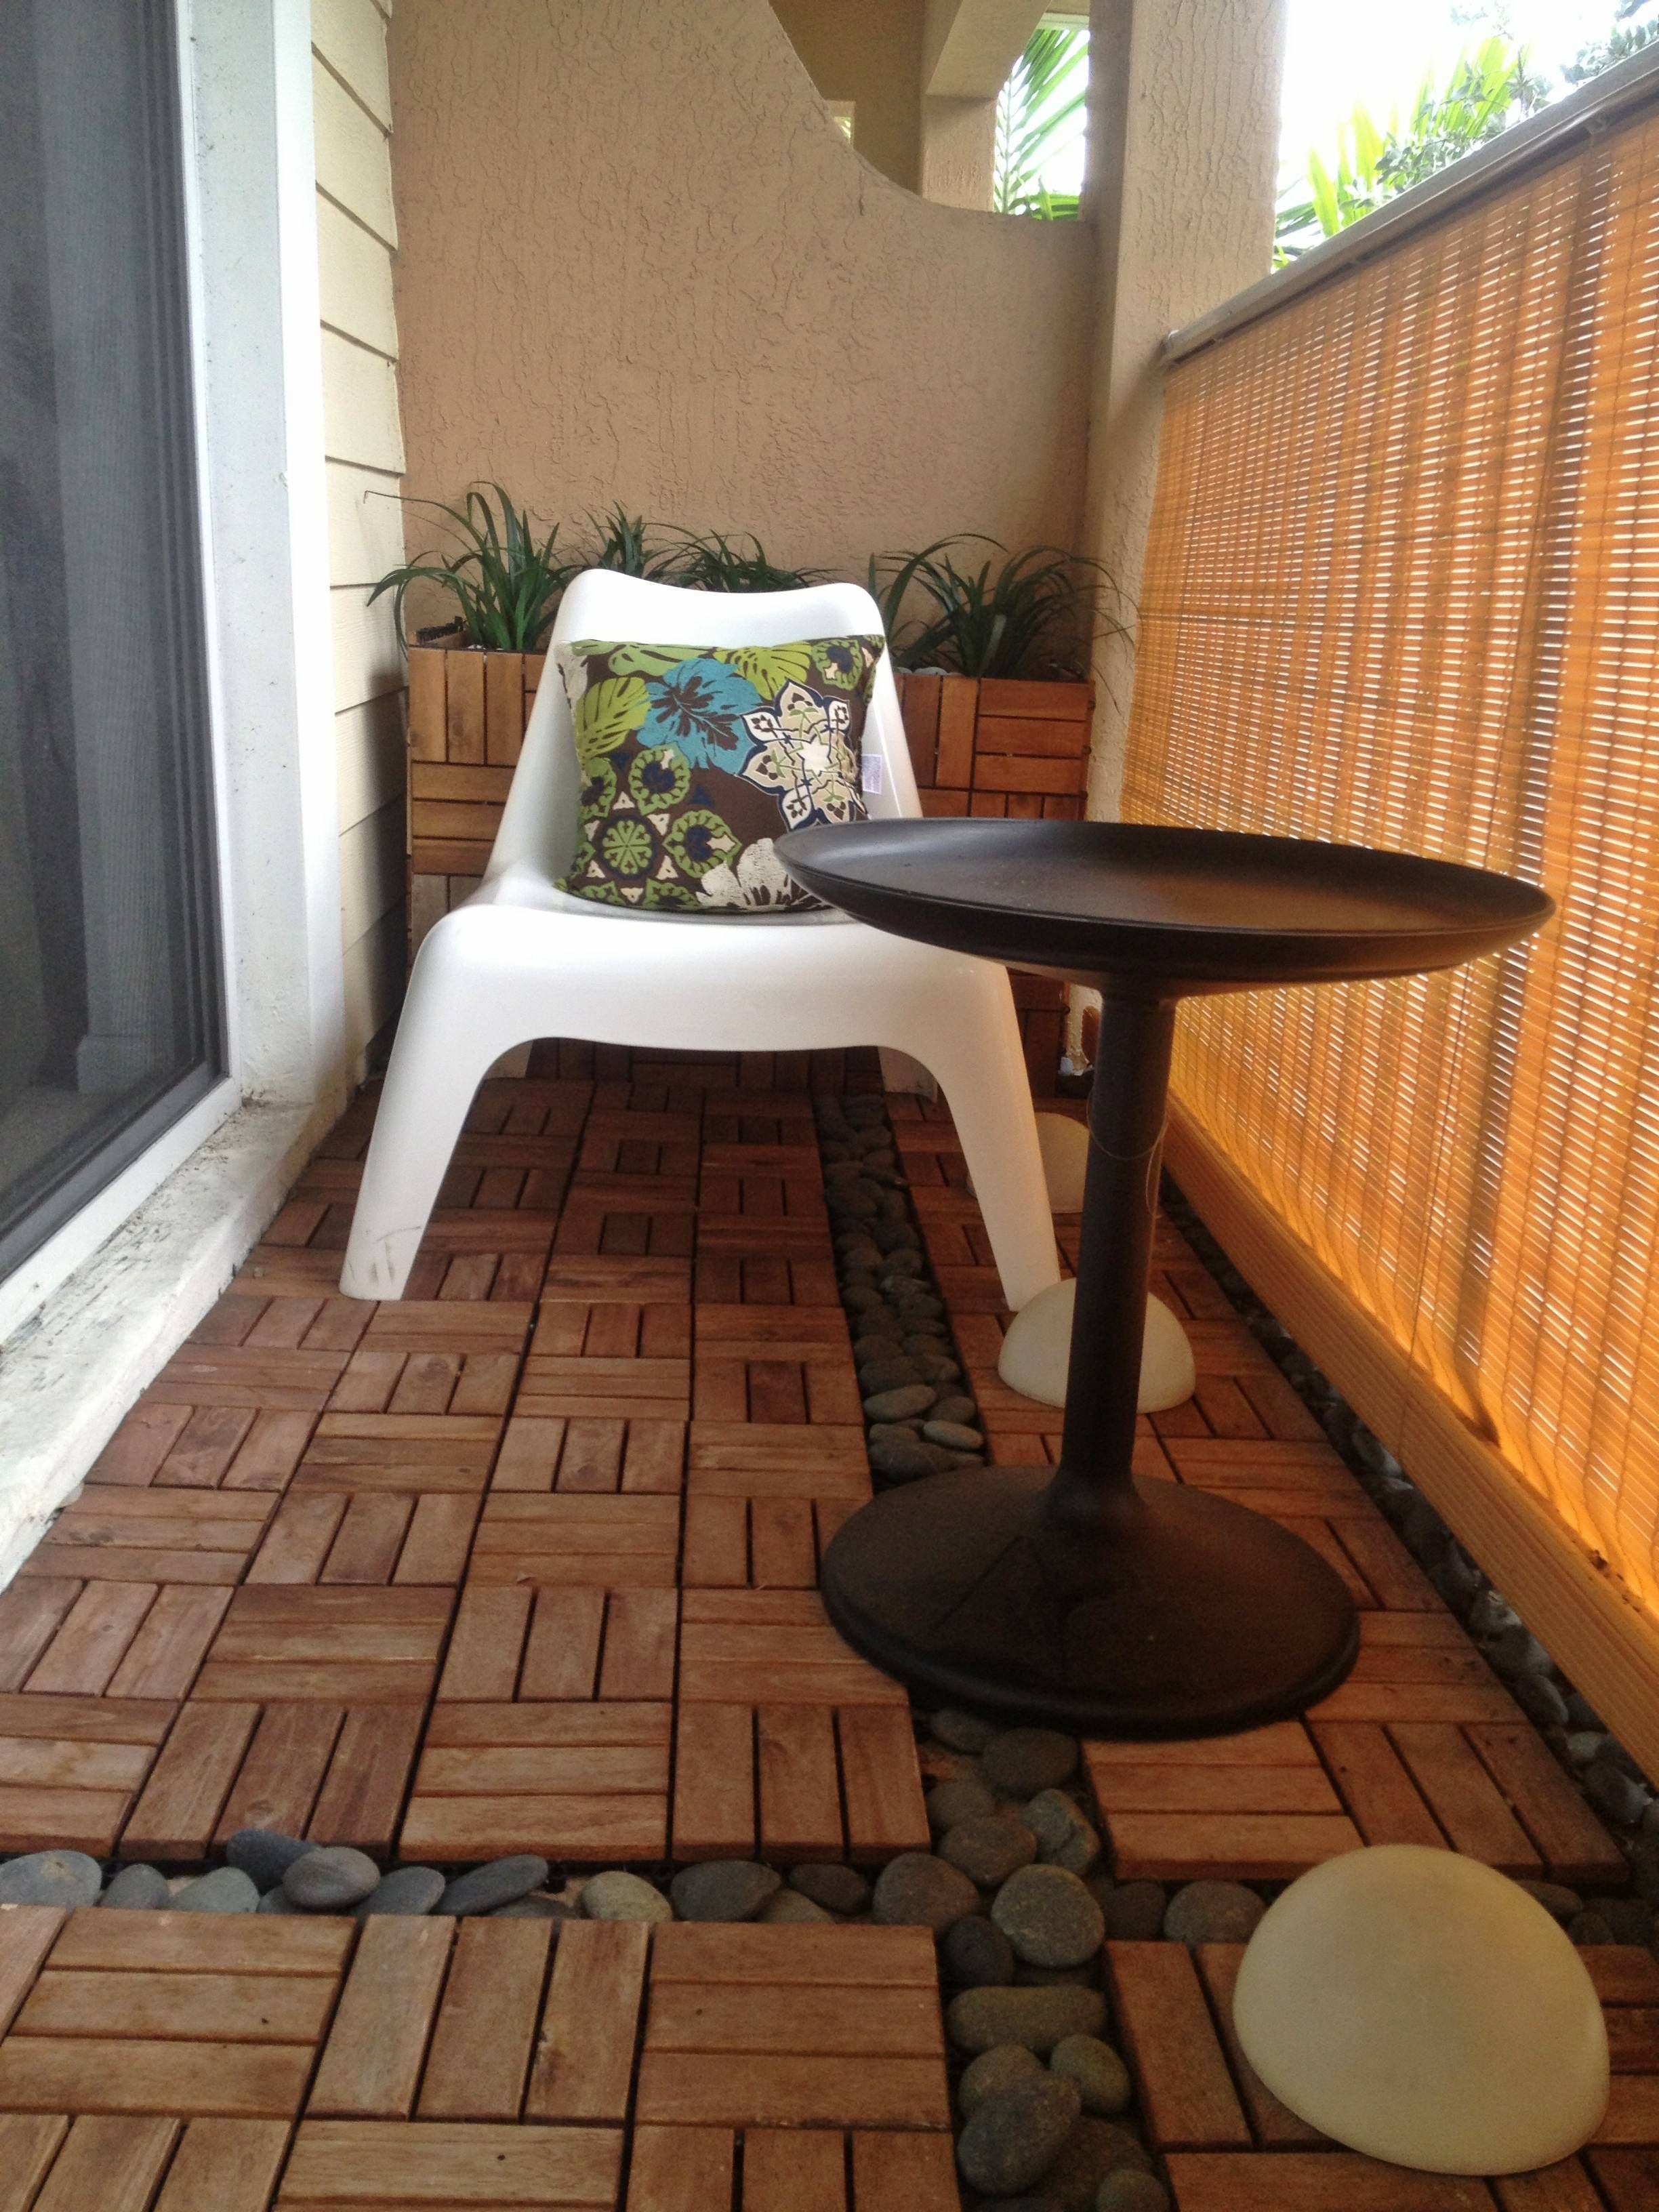 Luxury Balcony Flooring Options